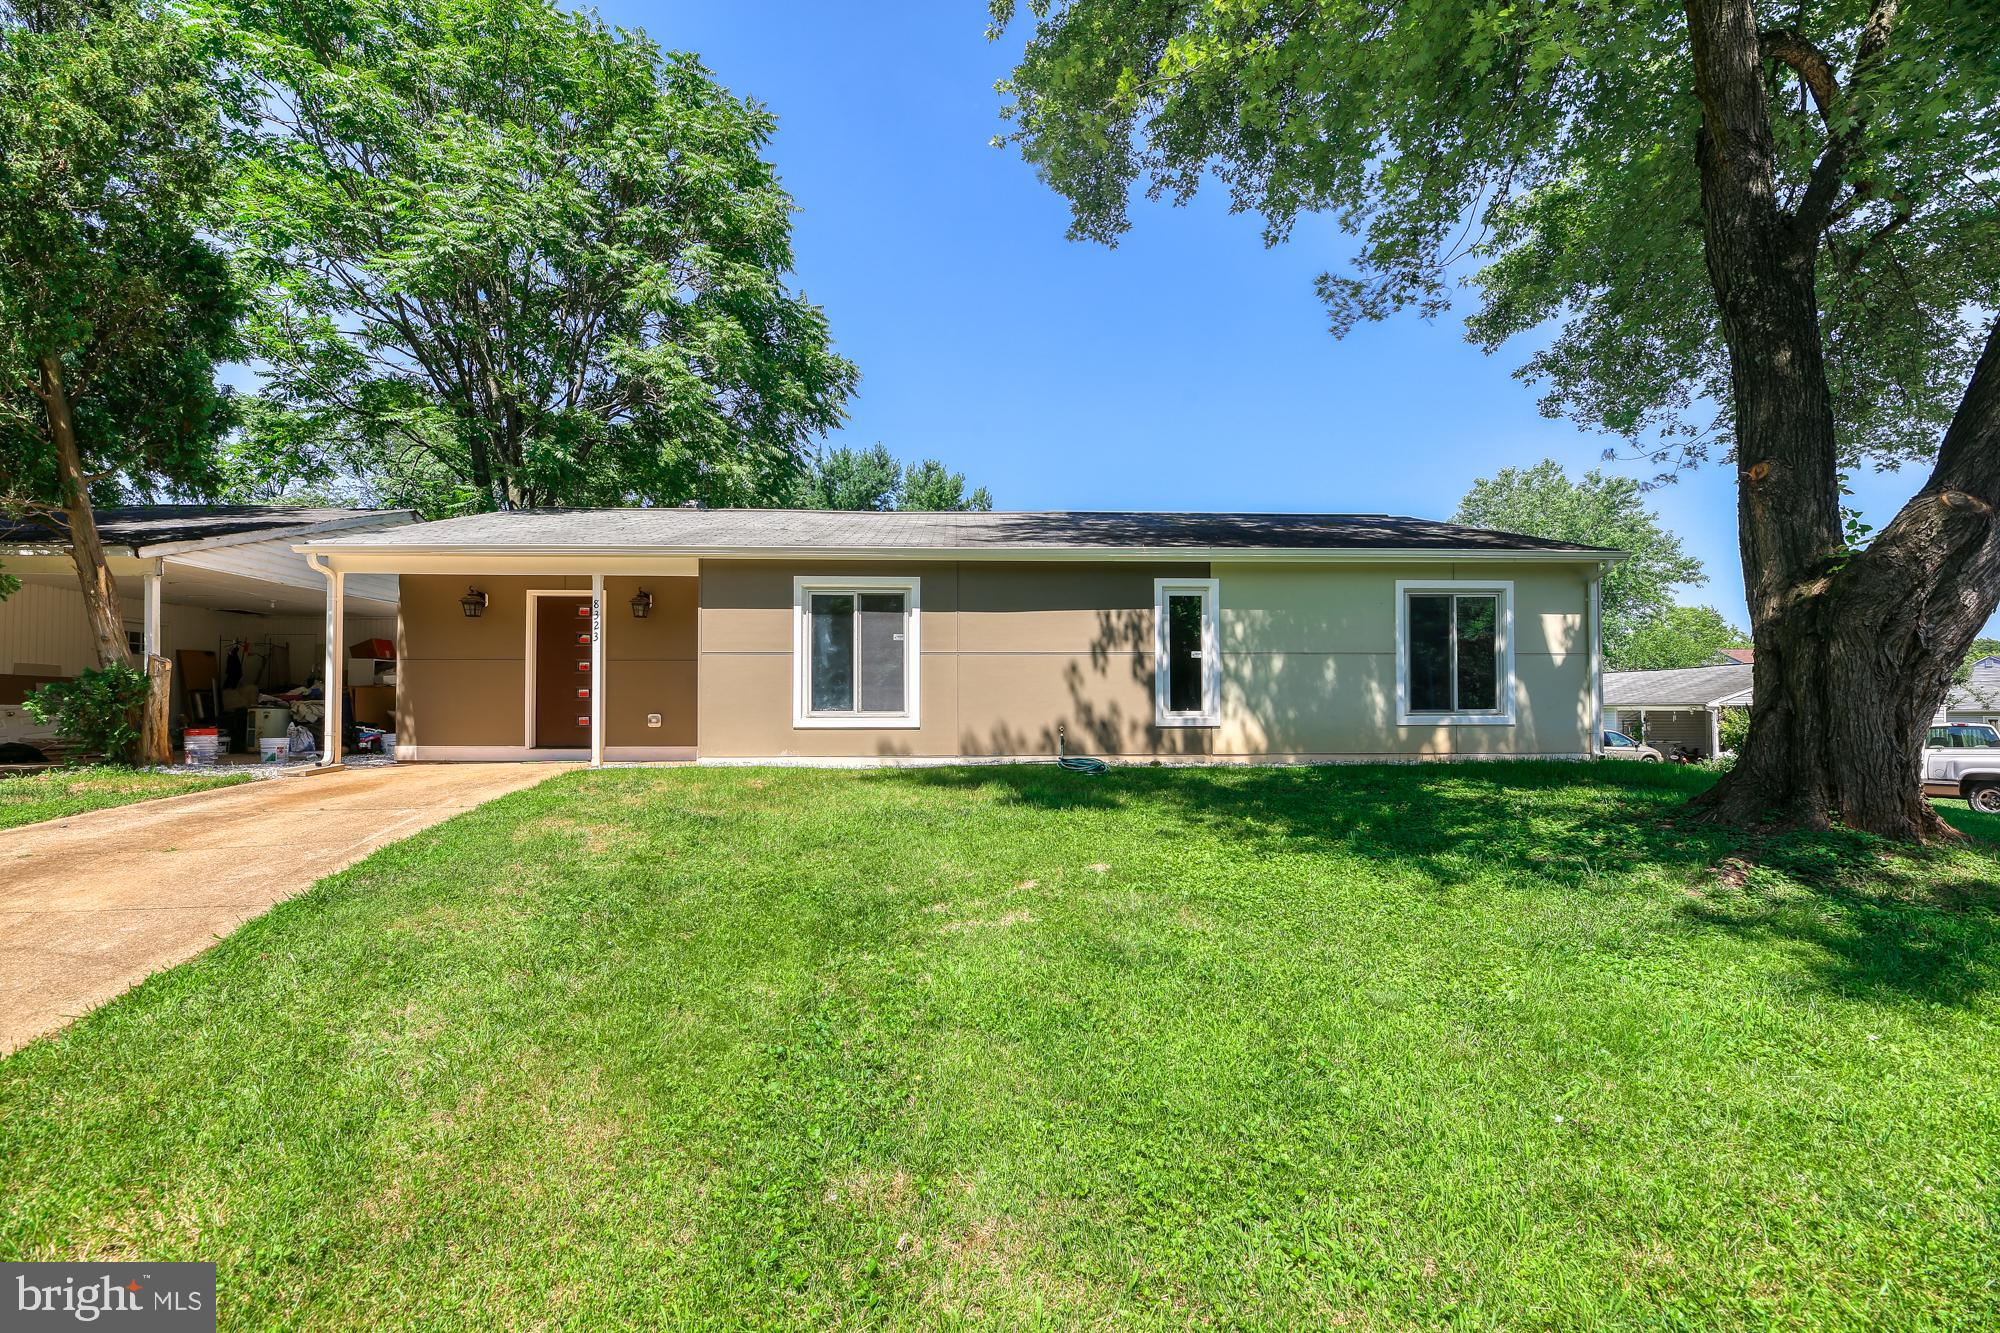 A charming rambler located in extremely convenient location to public park, grocery, shopping, and p